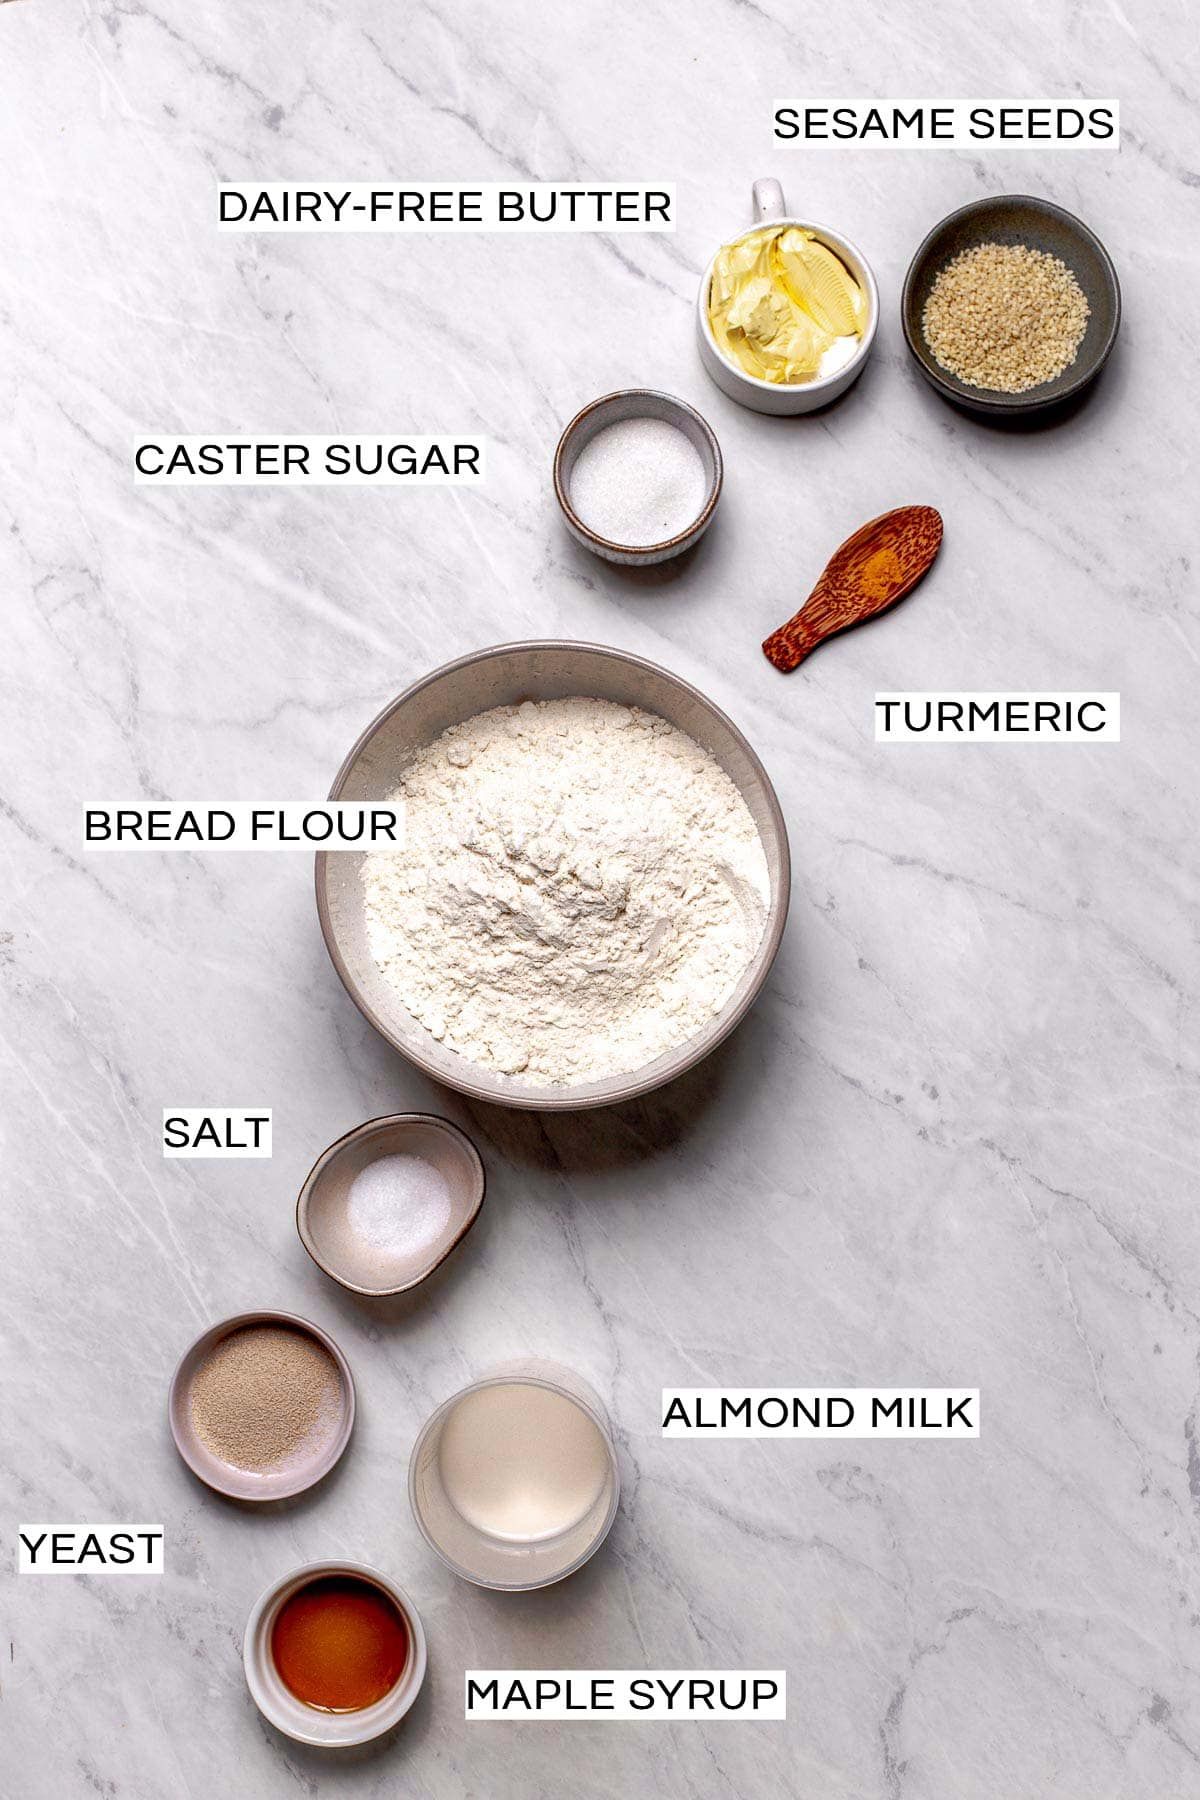 All ingredients needed to bake vegan burger buns laid out on a marble surface.